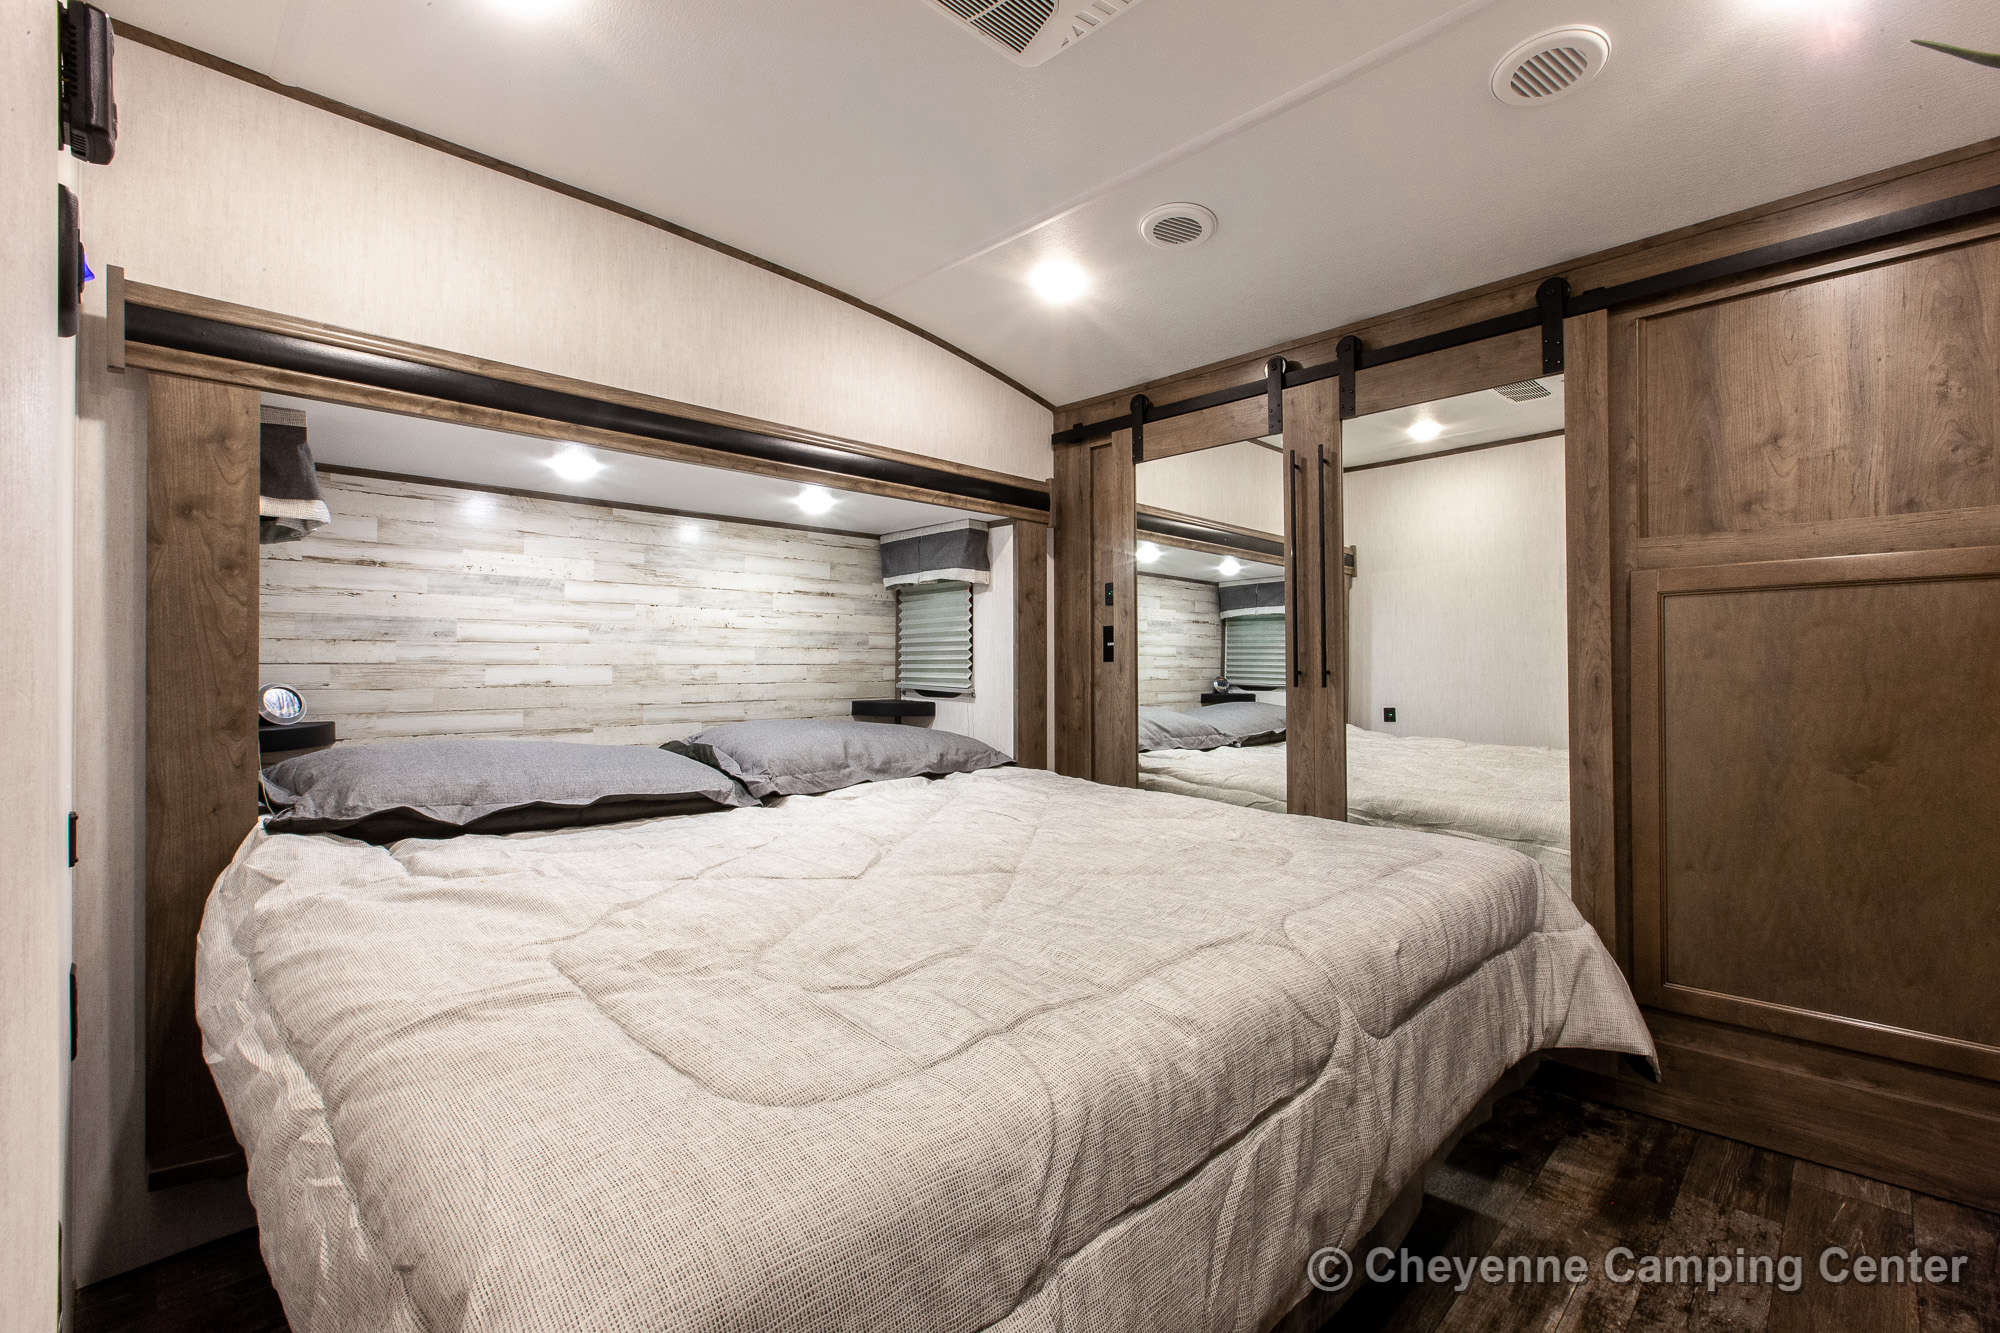 2021 Forest River Sabre Cobalt Edition 36BHQ Bunkhouse Fifth Wheel Interior Image